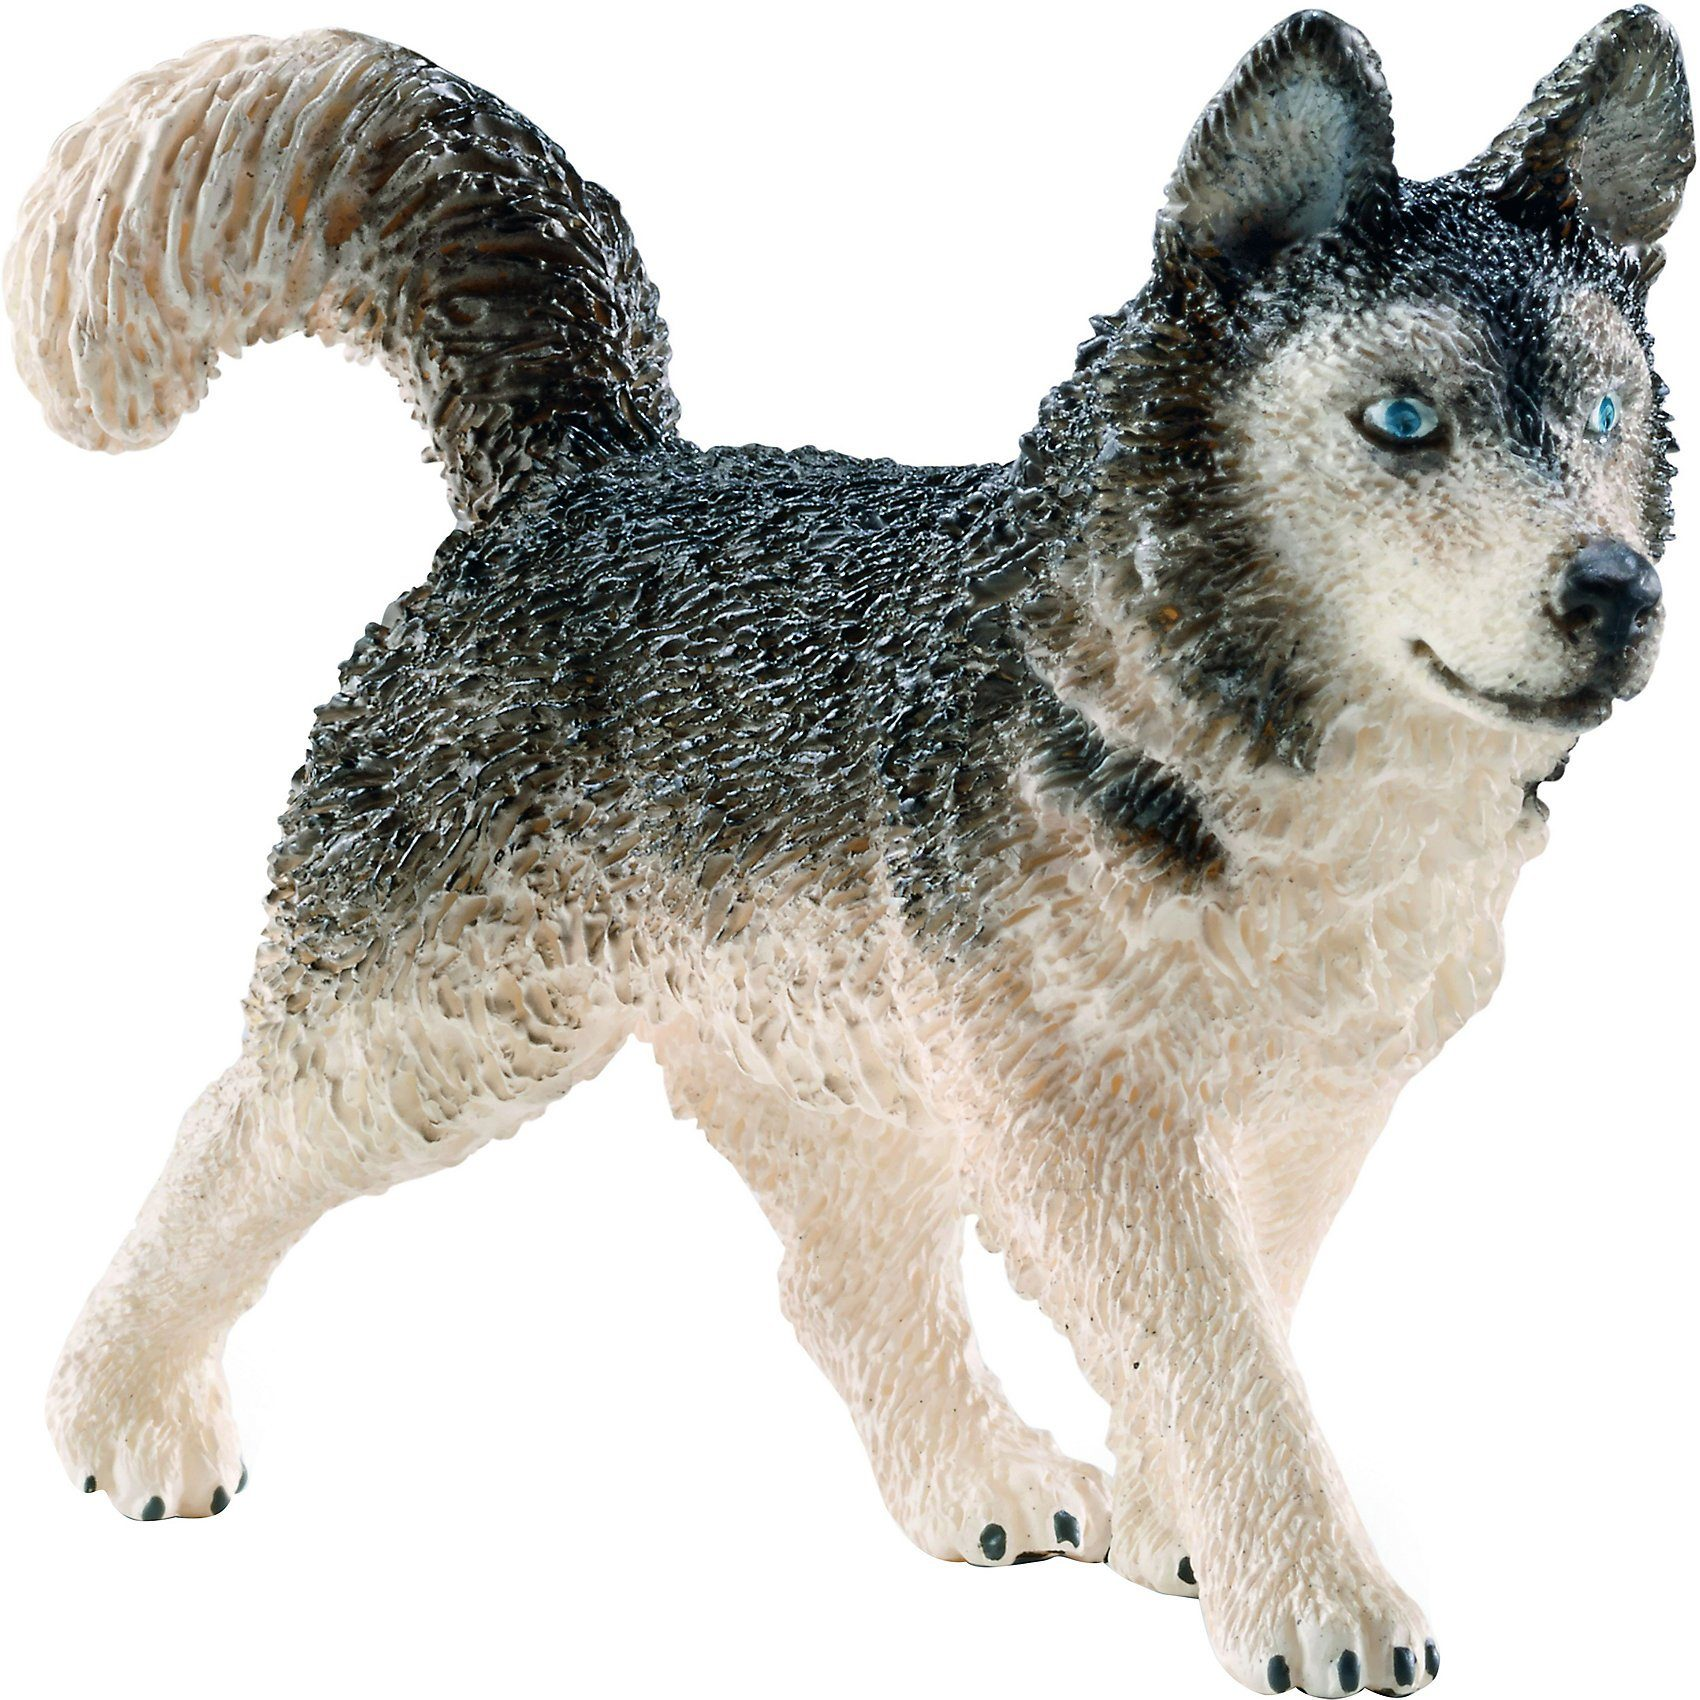 Schleich 16835 Farm World: Husky